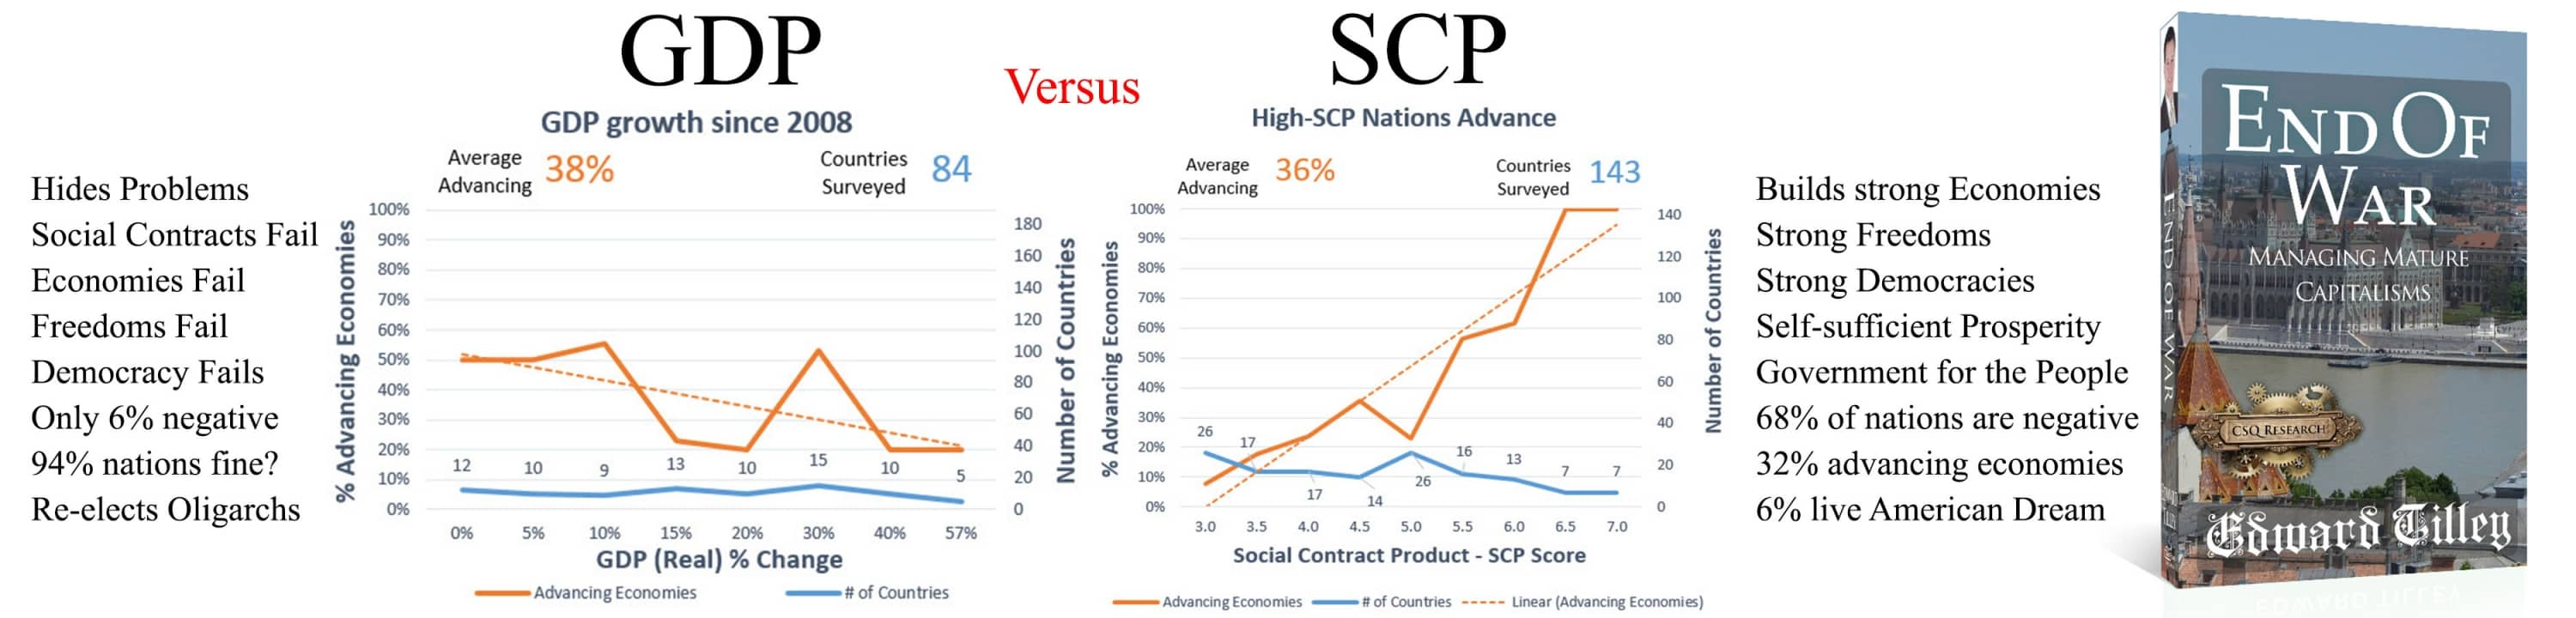 Social Contract Product is designed to replace the GDP as the truer measure of economic performance